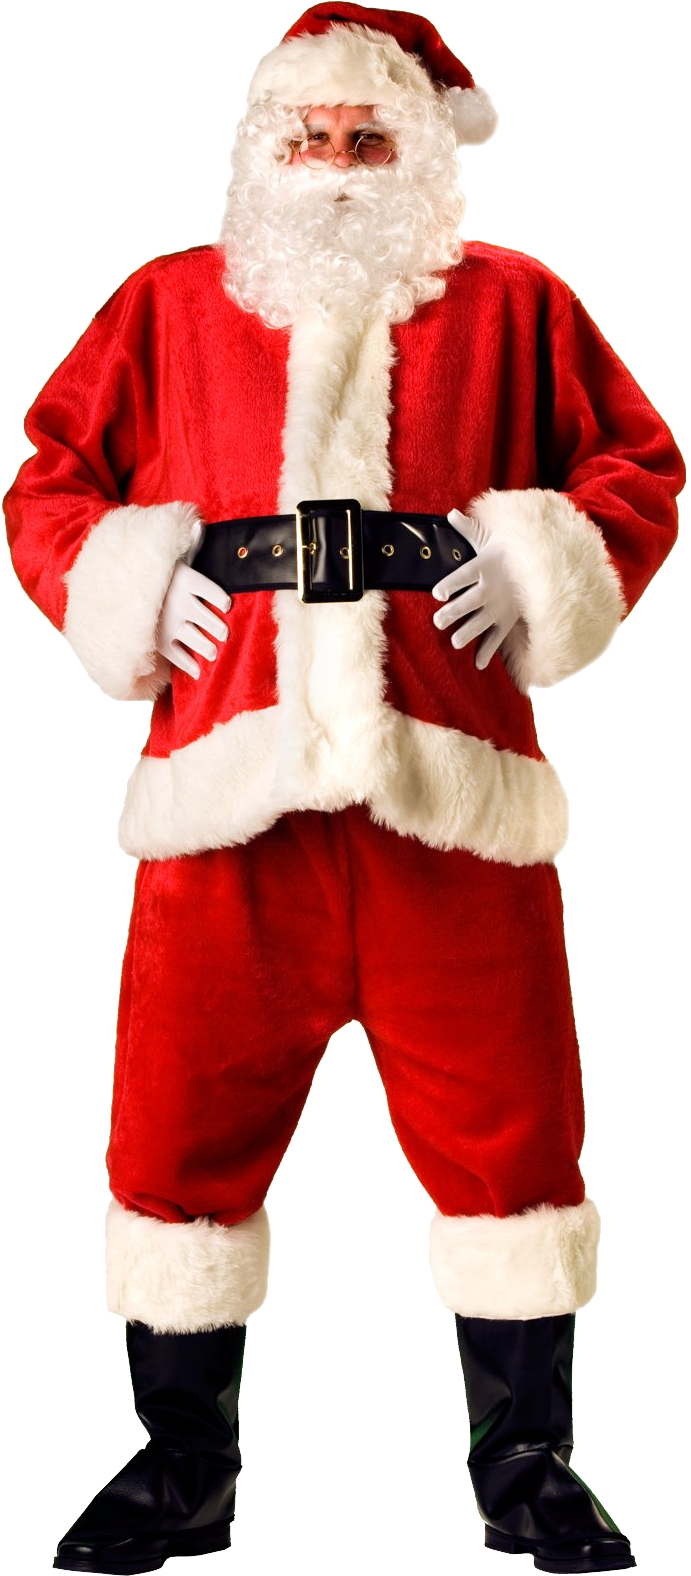 freeuse library Png images free download. Body clipart santa claus